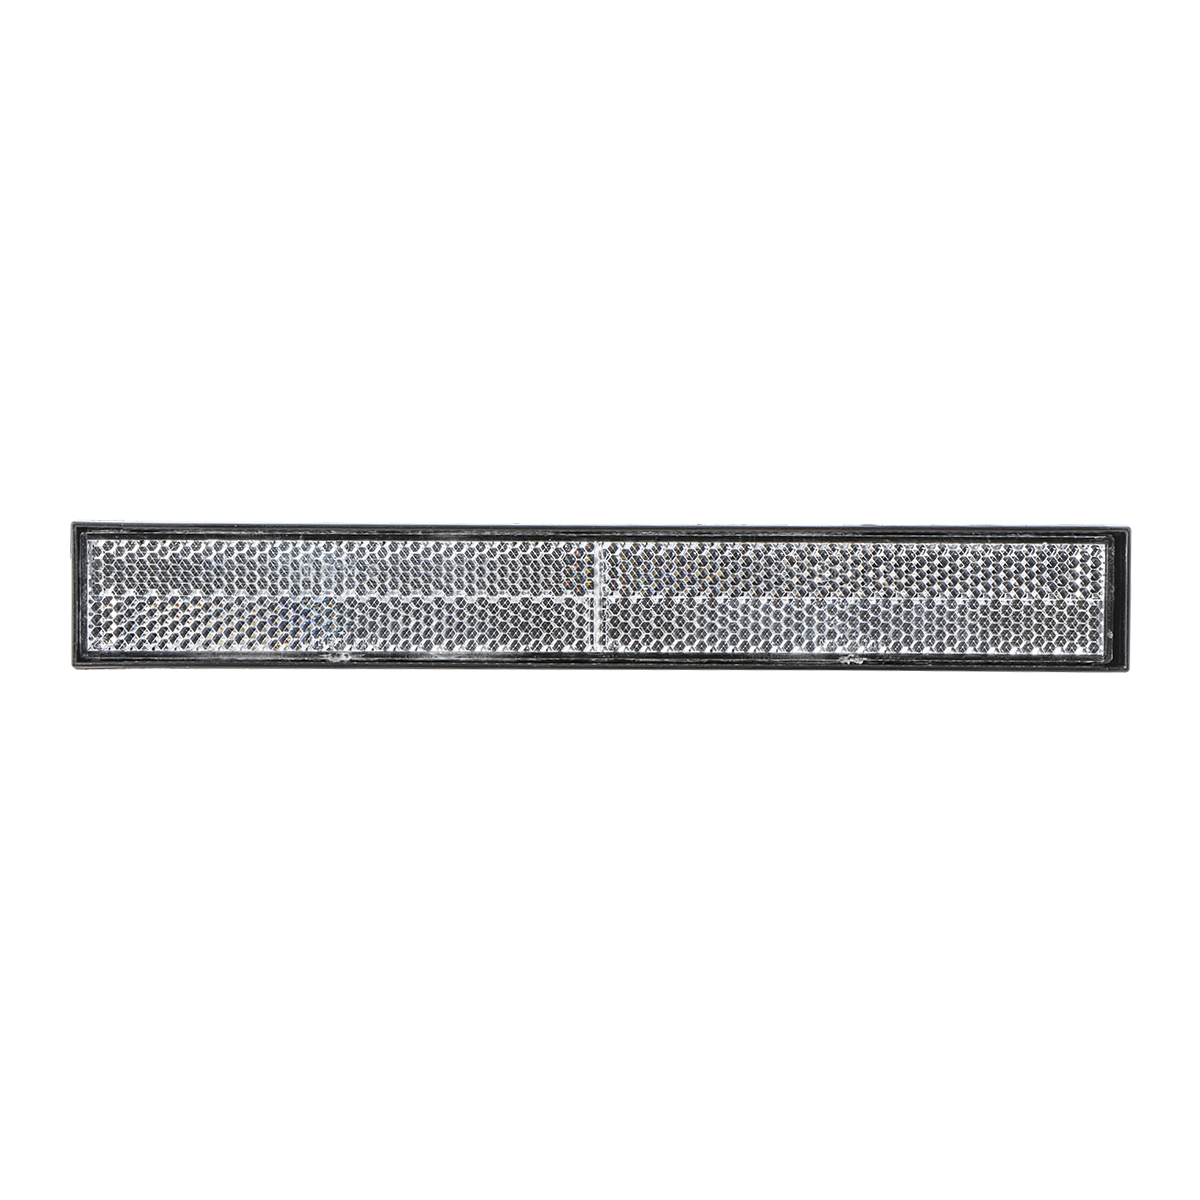 93431 Stick-On Conspicuity Reflector Strip